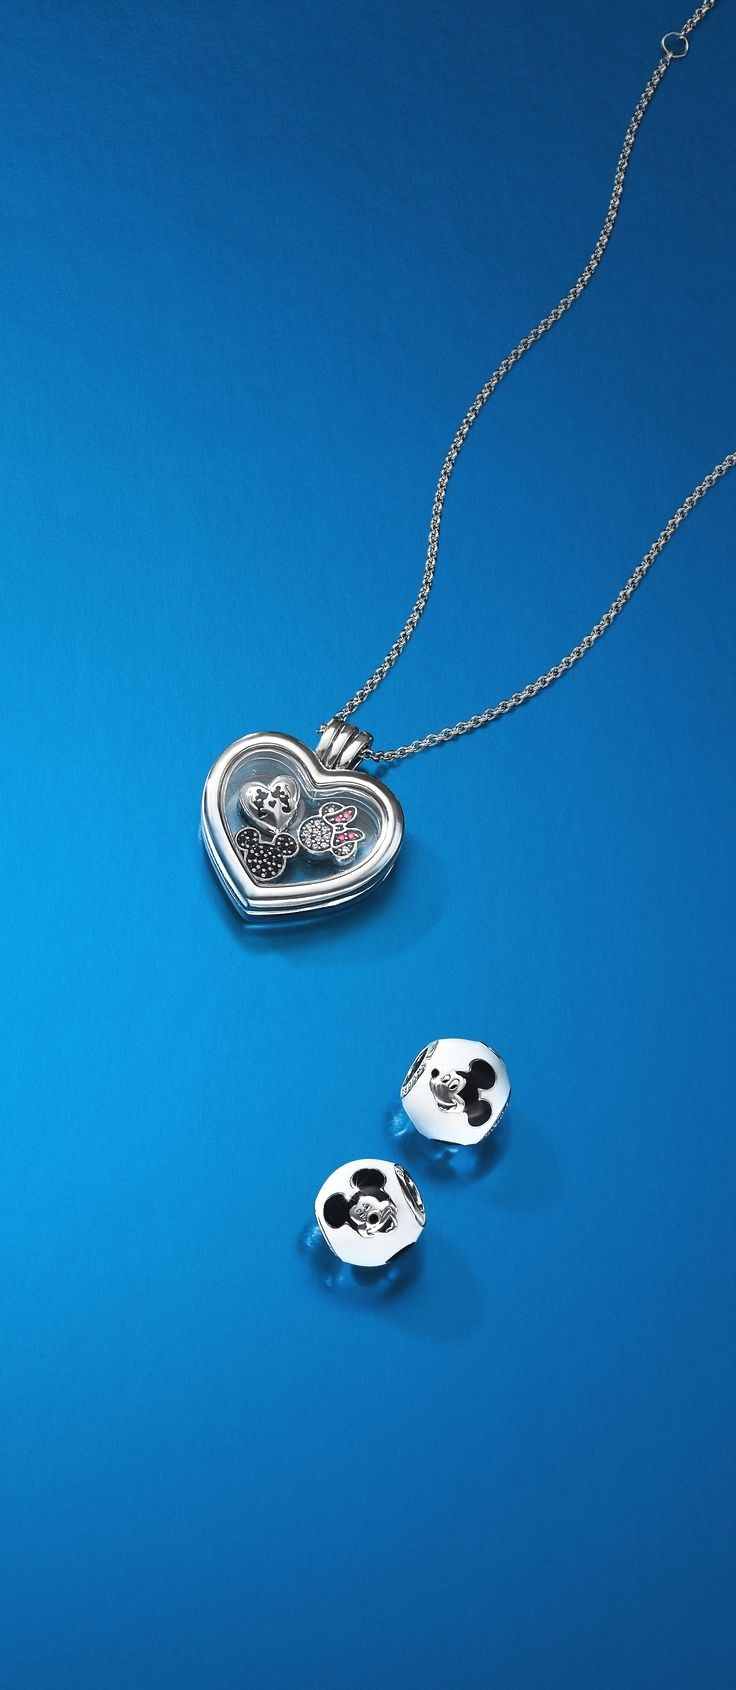 2018 Silver & Gold Jewelry Collection In 2019 | Pandora And Other Pertaining To Latest Disney Mickey Floating Locket Necklaces (View 10 of 25)